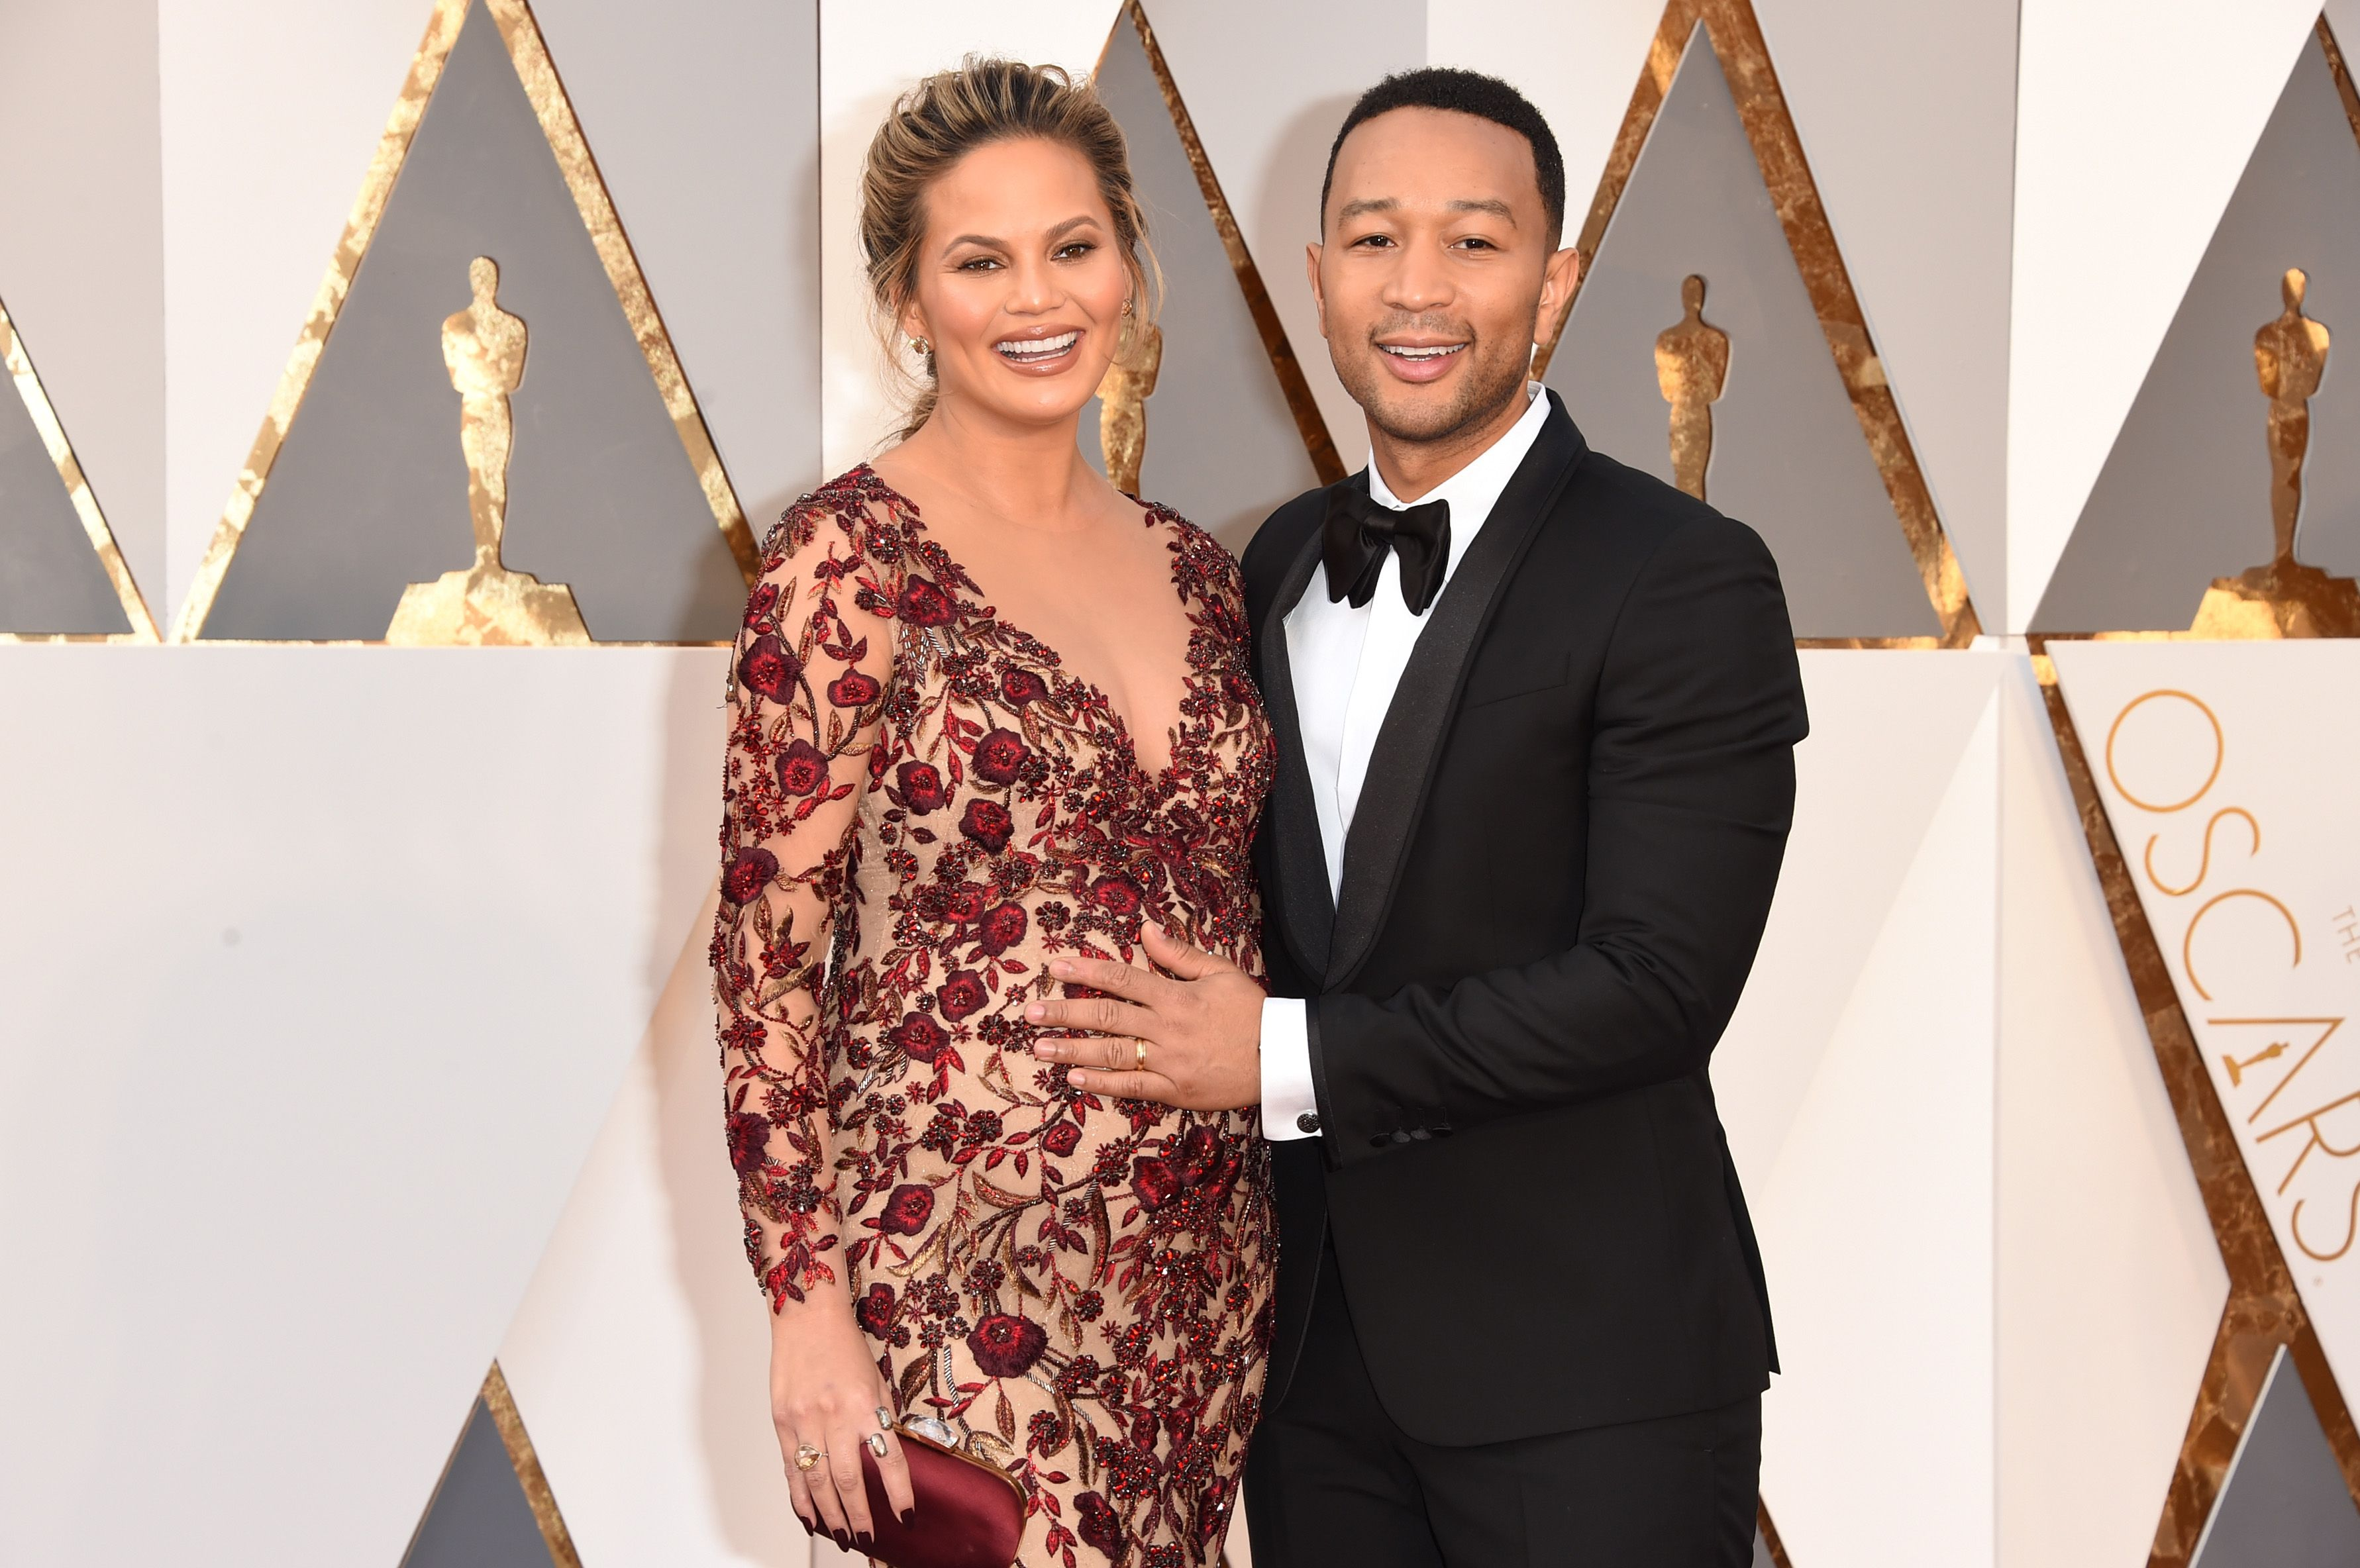 Chrissy Teigen and John Legend during the 88th Annual Academy Awards at Hollywood & Highland Center on February 28, 2016 in Hollywood, California. | Source: Getty Images